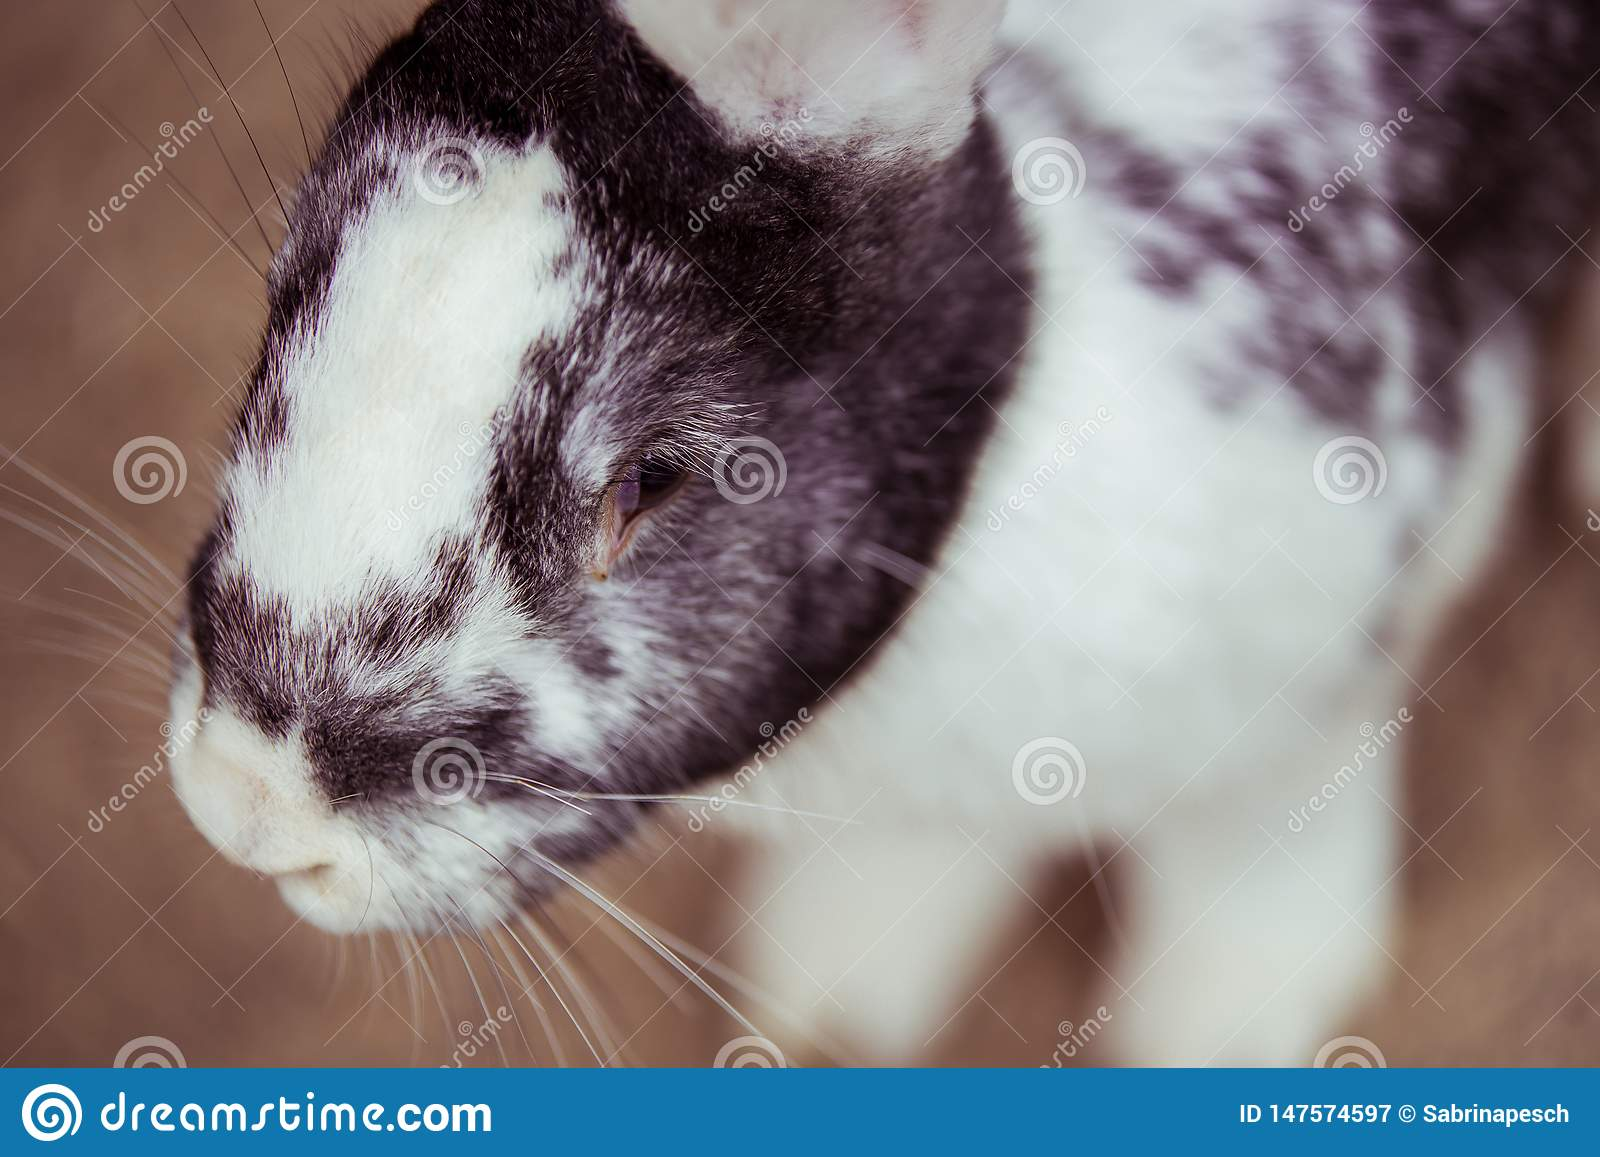 The closeup of a little bunny. The colors of the bunny are white and gray